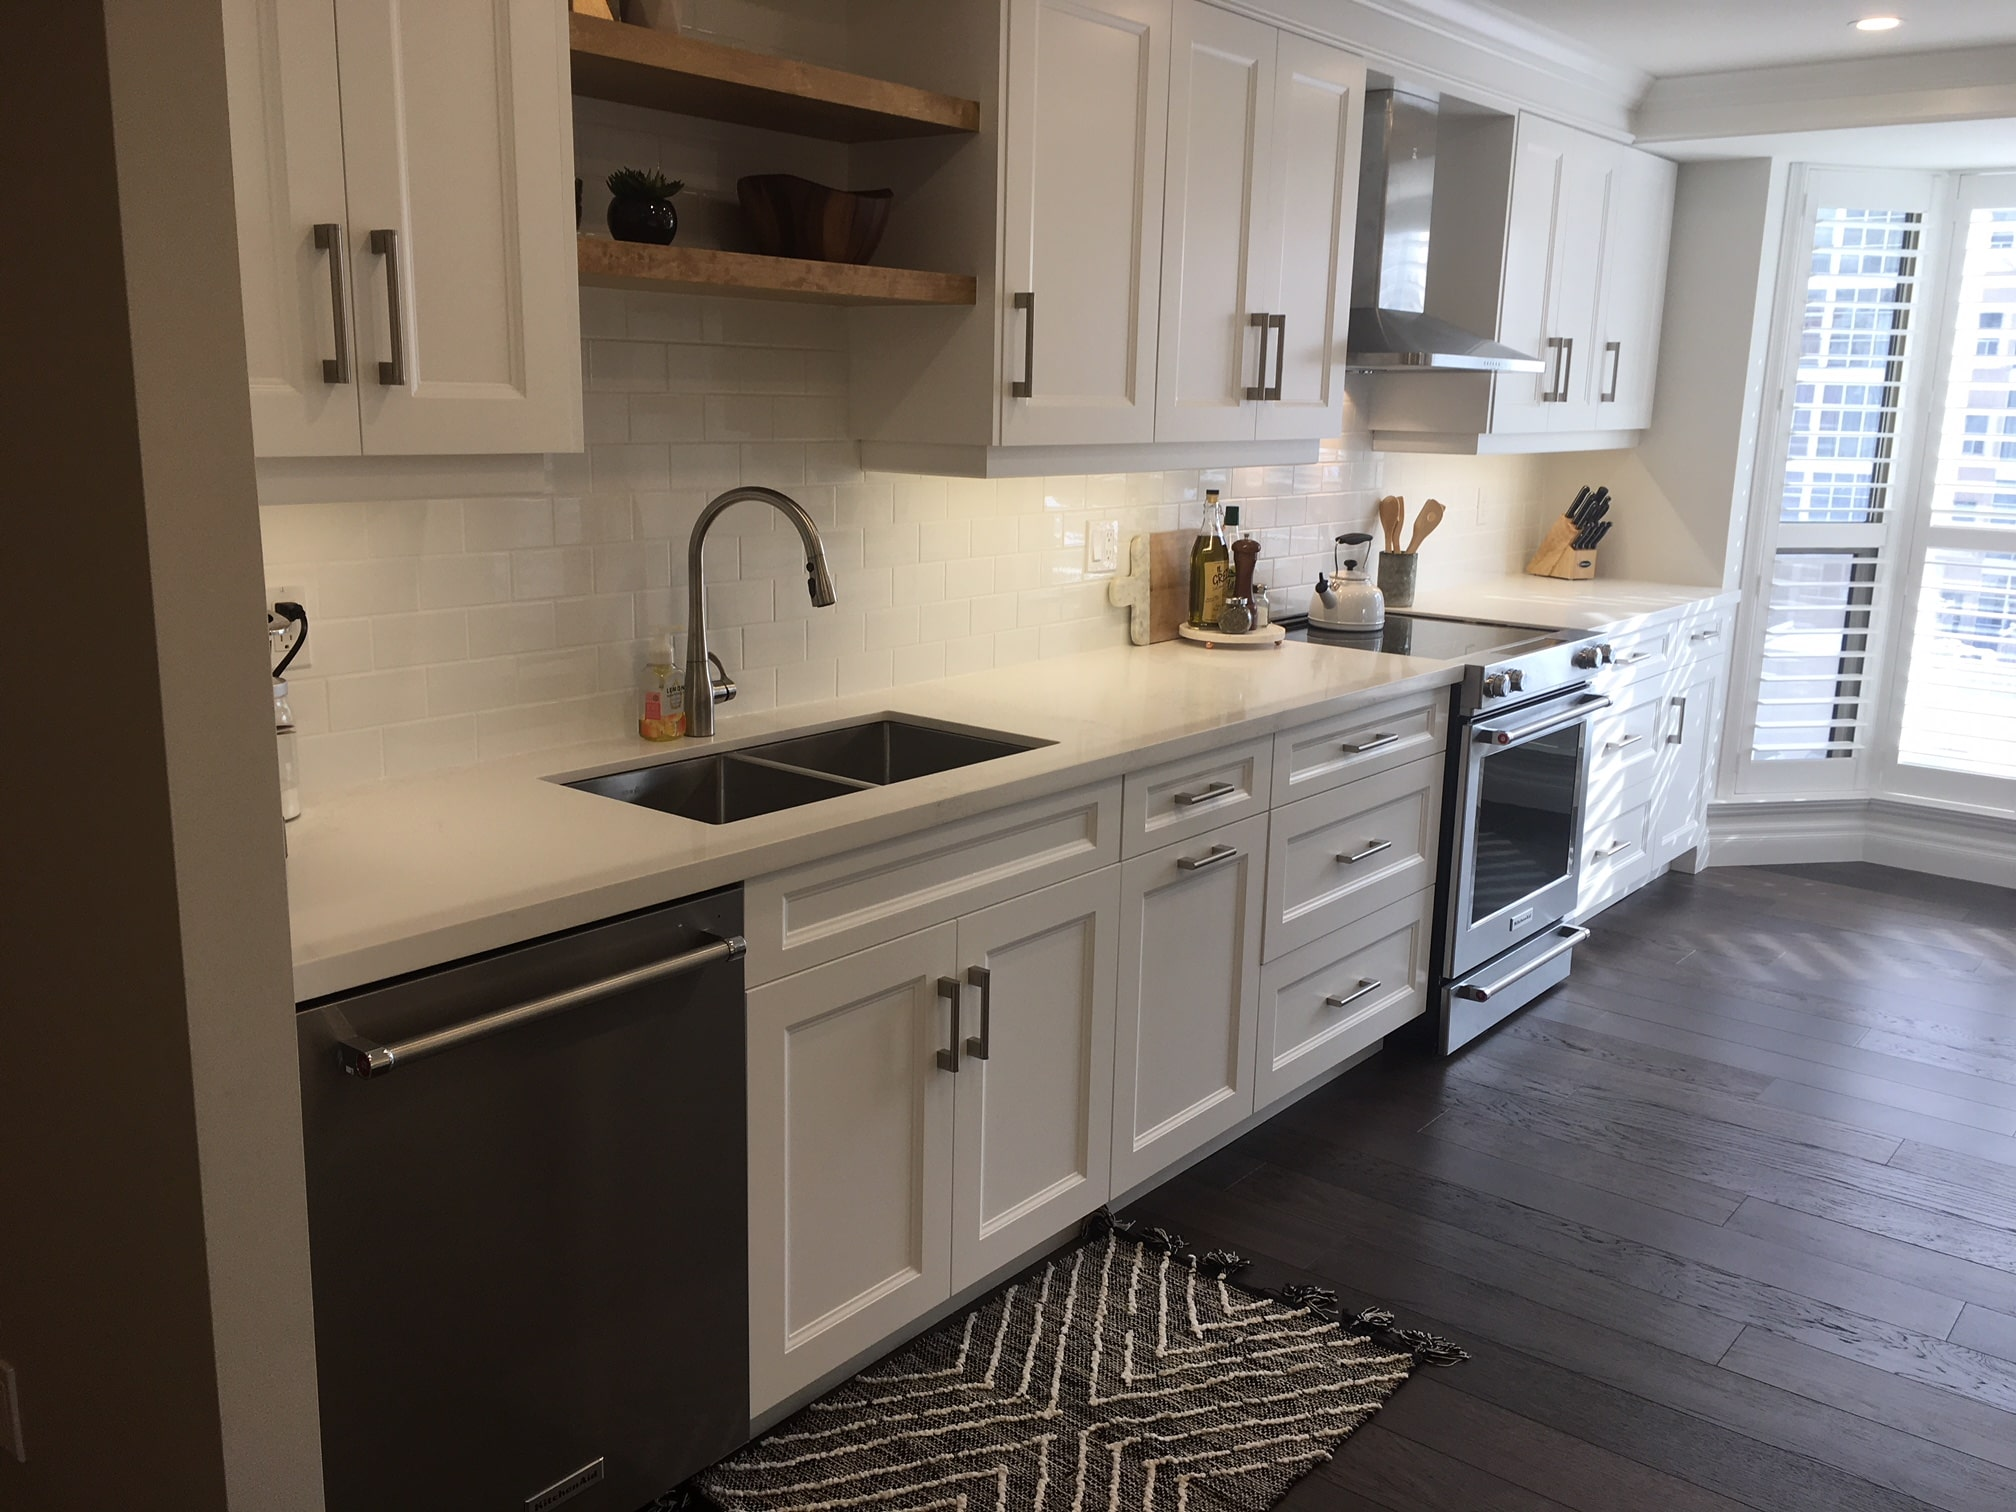 Condo kitchen renovation Hamilton